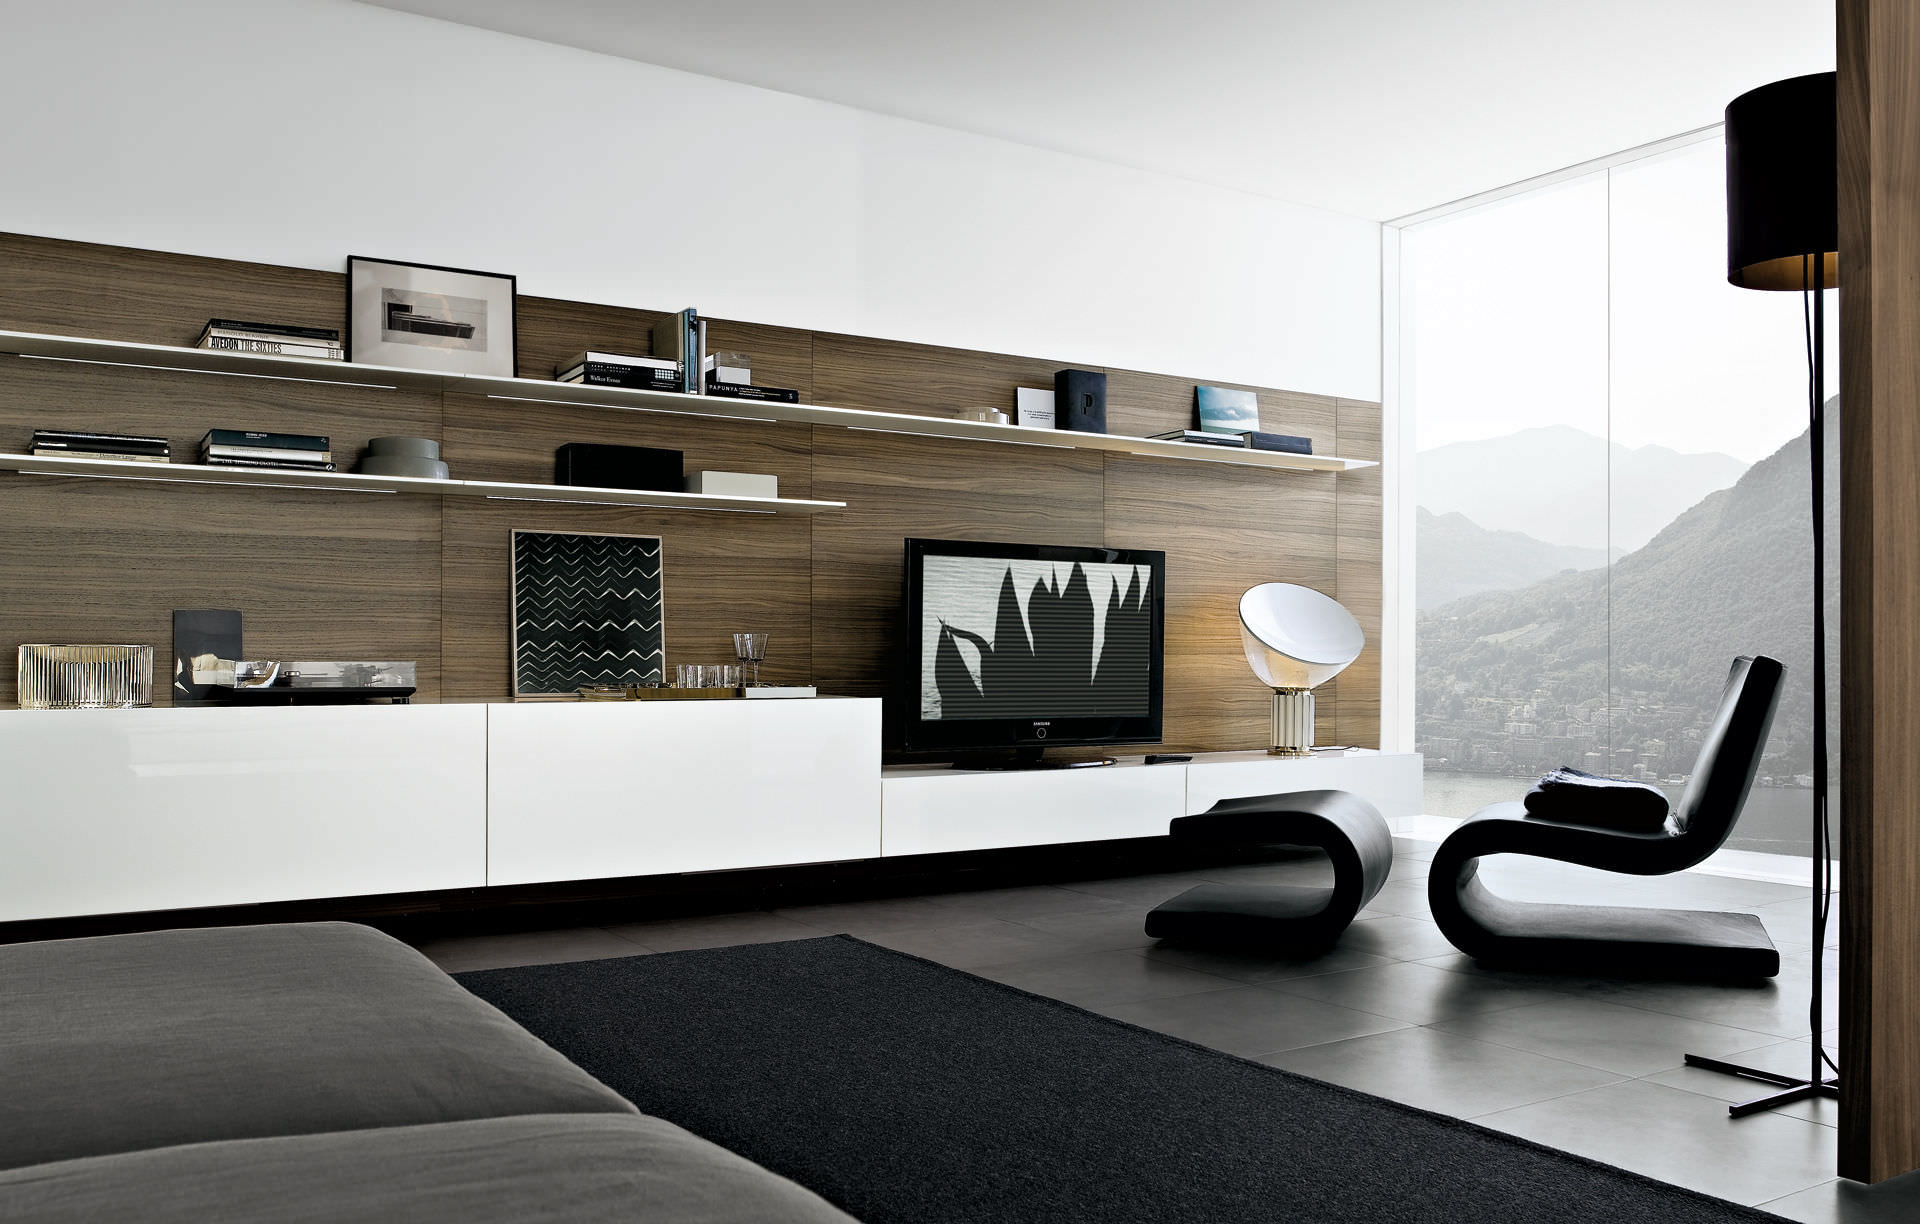 wohnw nde weiss hochglanz m bel aequivalere. Black Bedroom Furniture Sets. Home Design Ideas